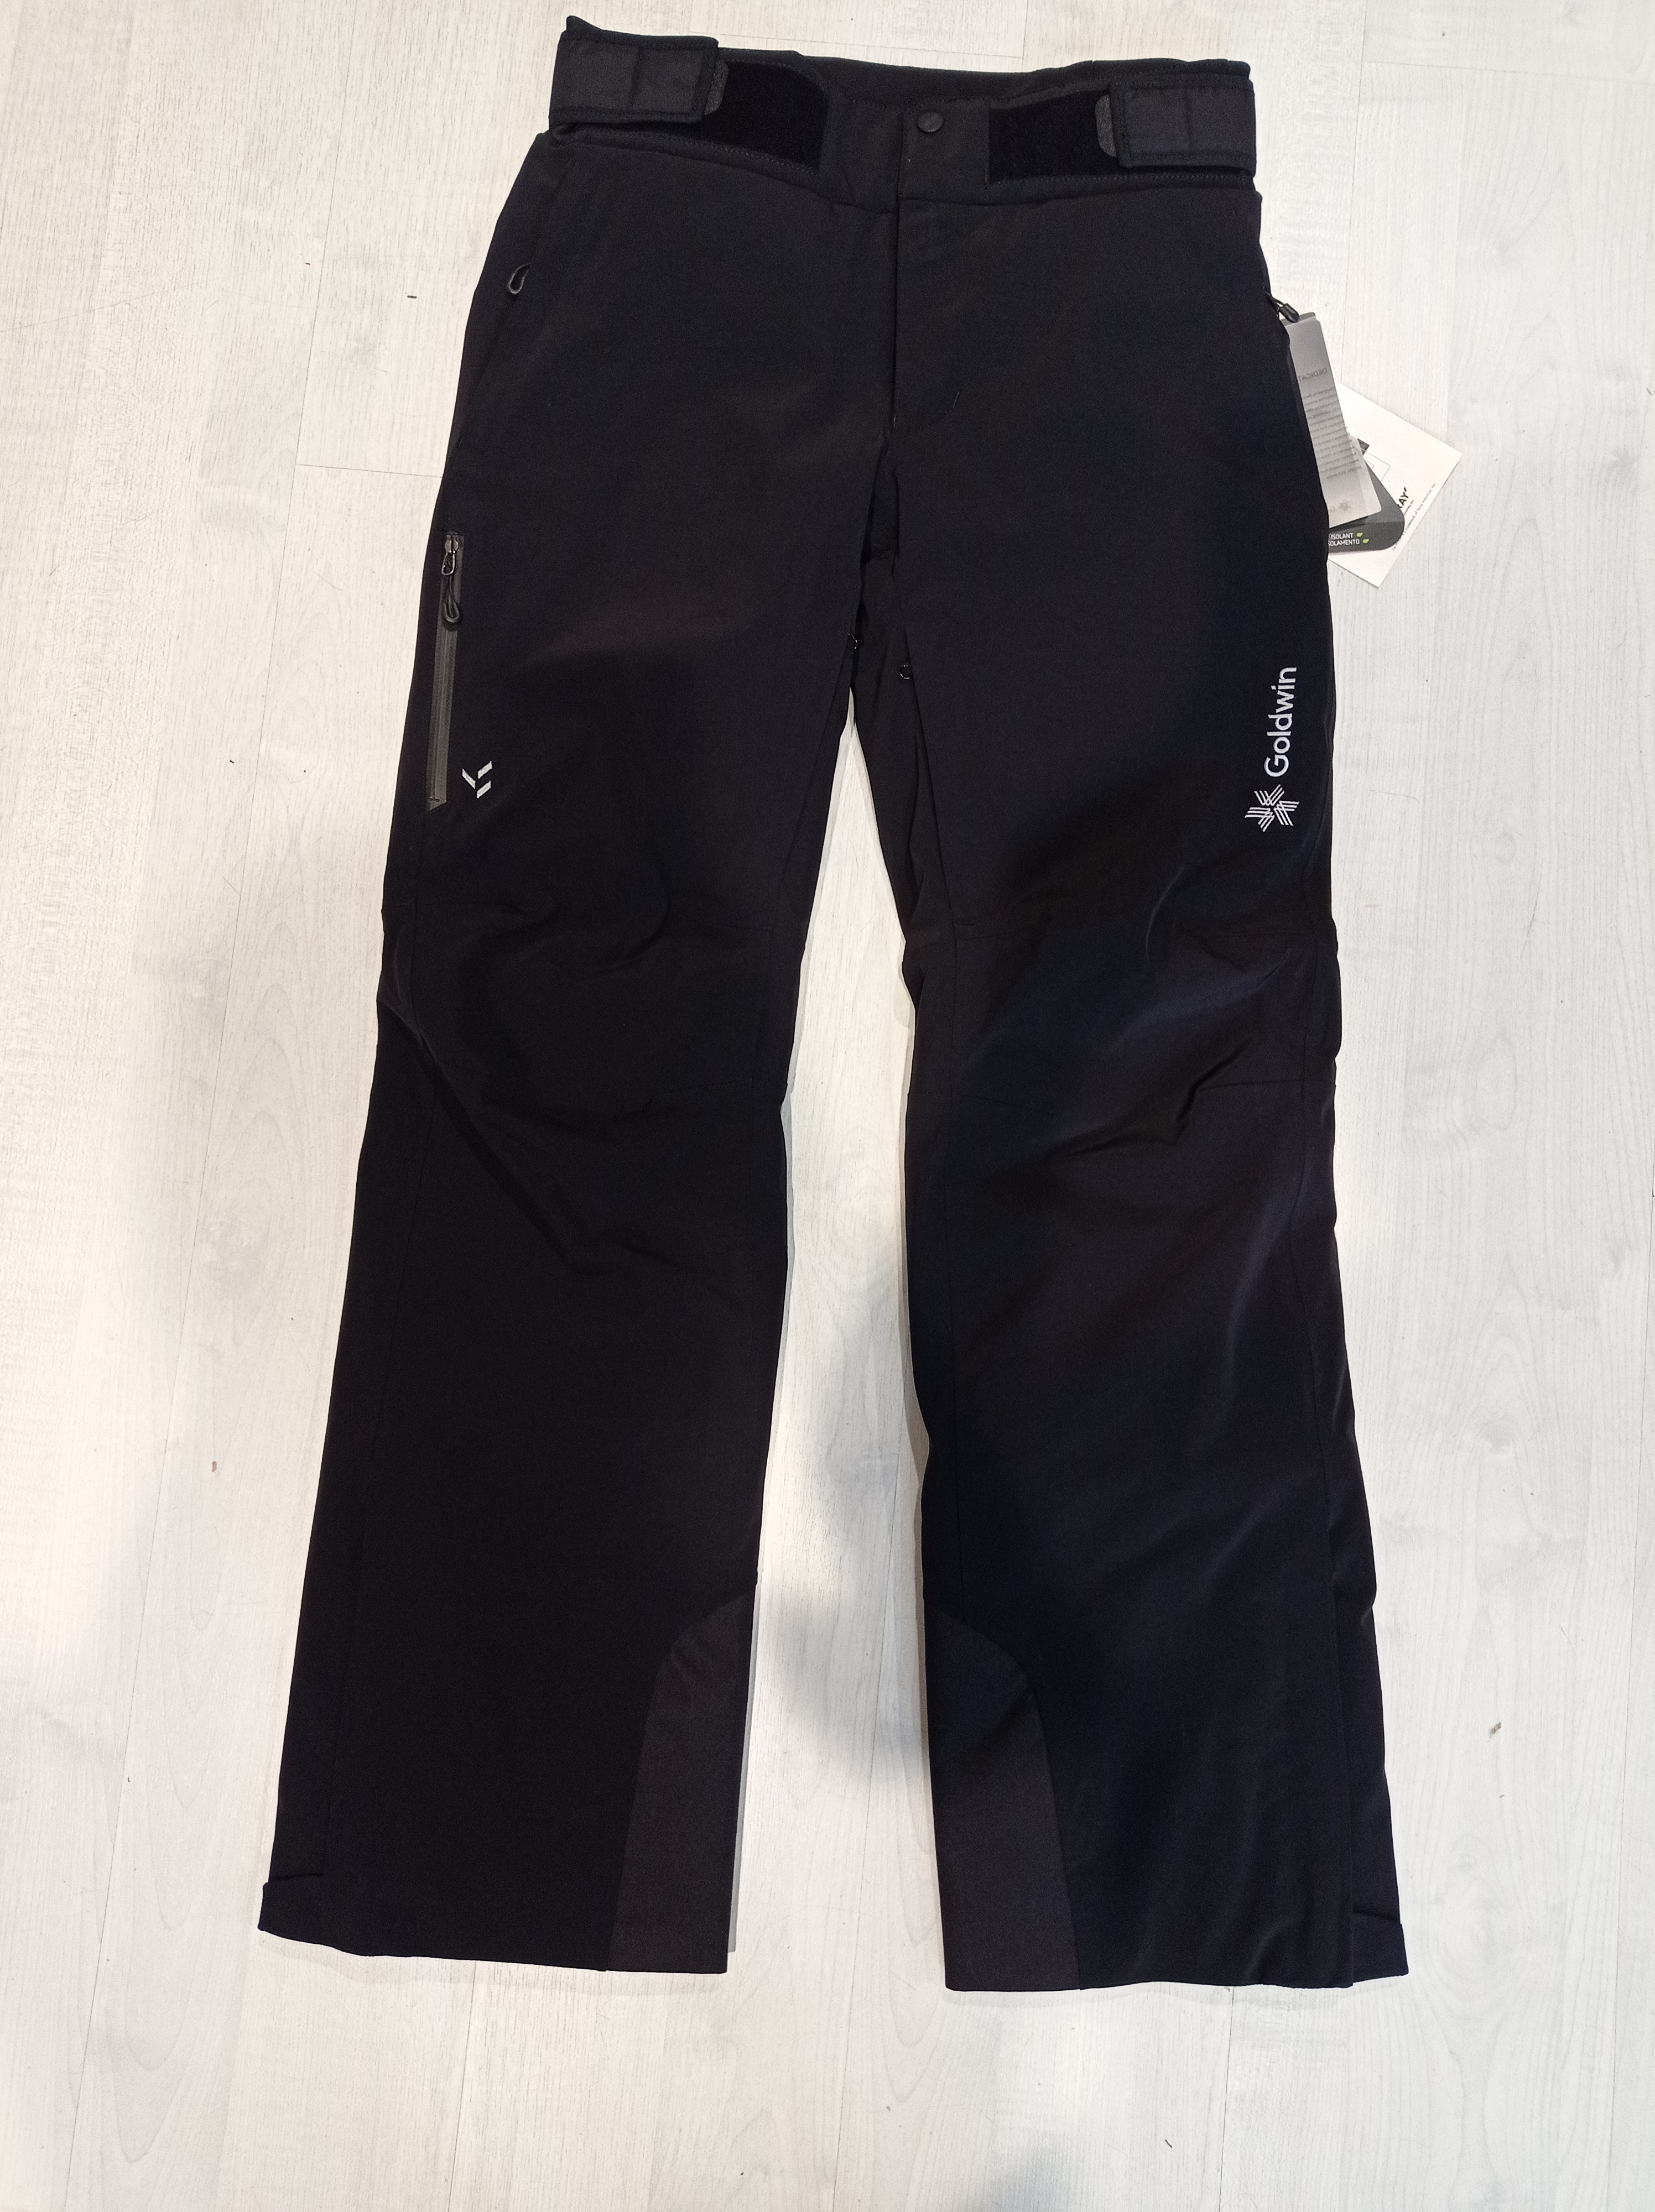 GOLDWIN PANT MEN G-BLISS - BLACK - 2021